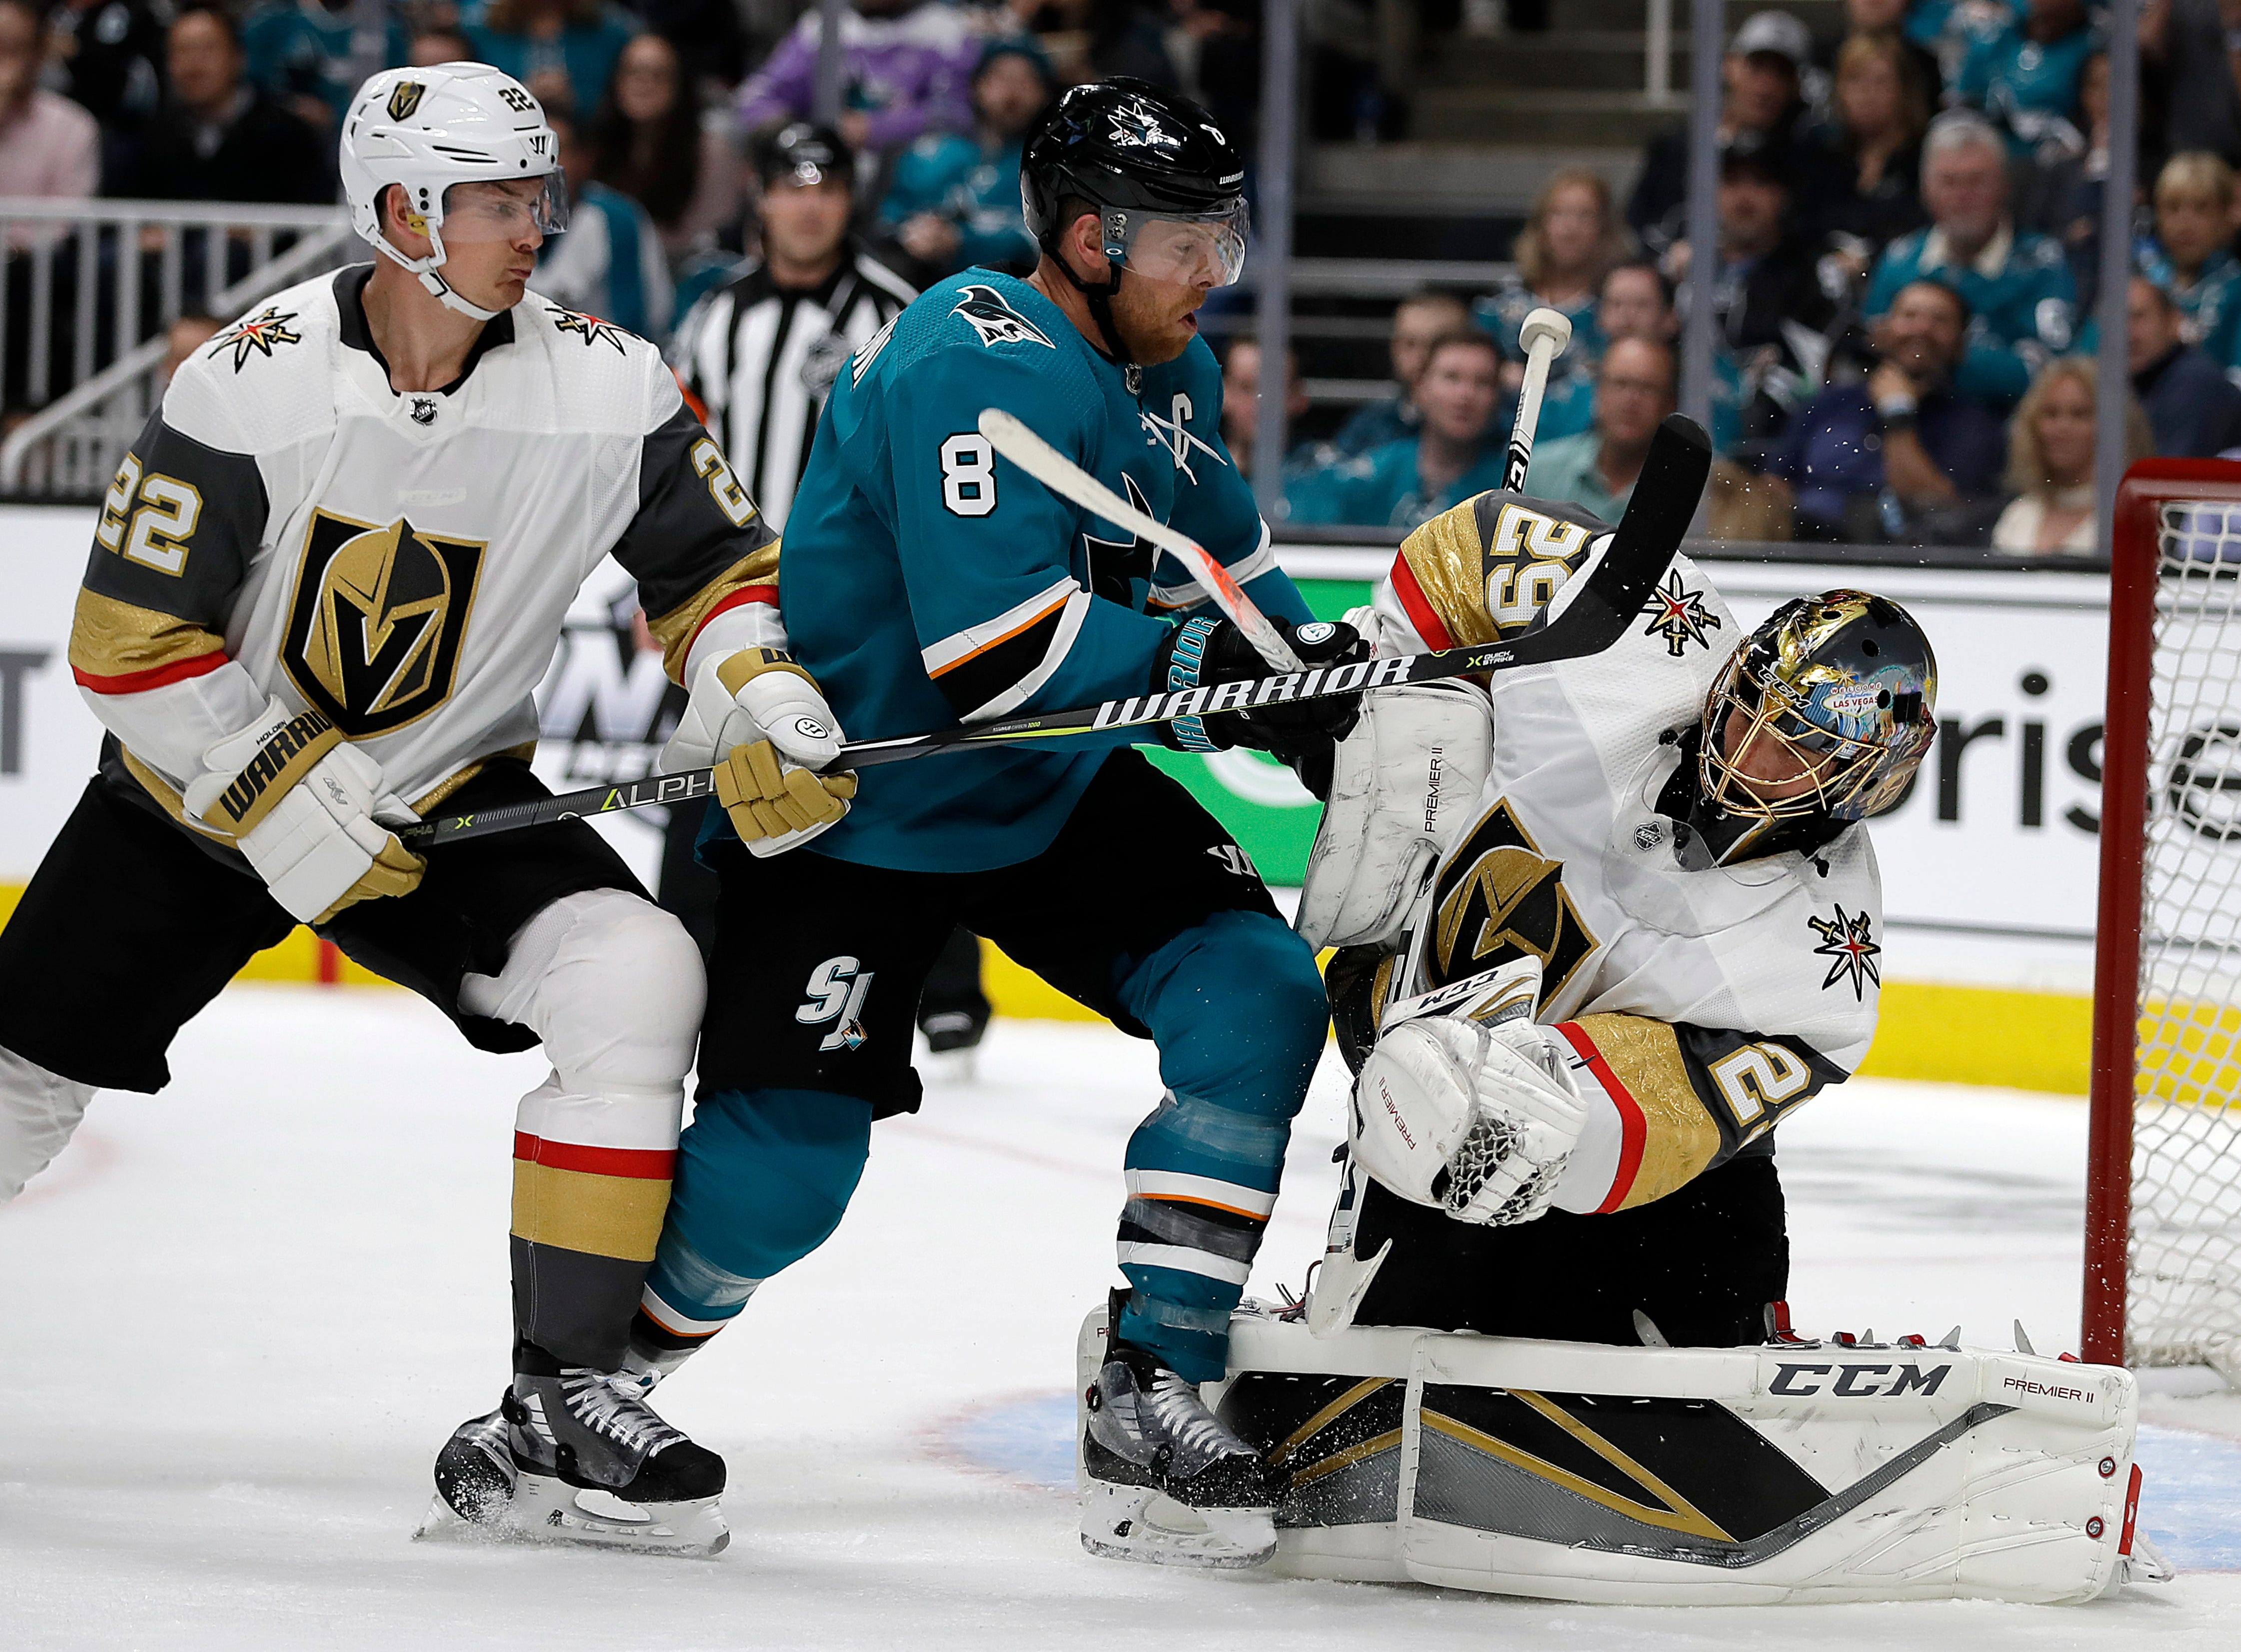 Sharks captain Joe Pavelski scores goal with his face in Game 1 vs. Golden Knights